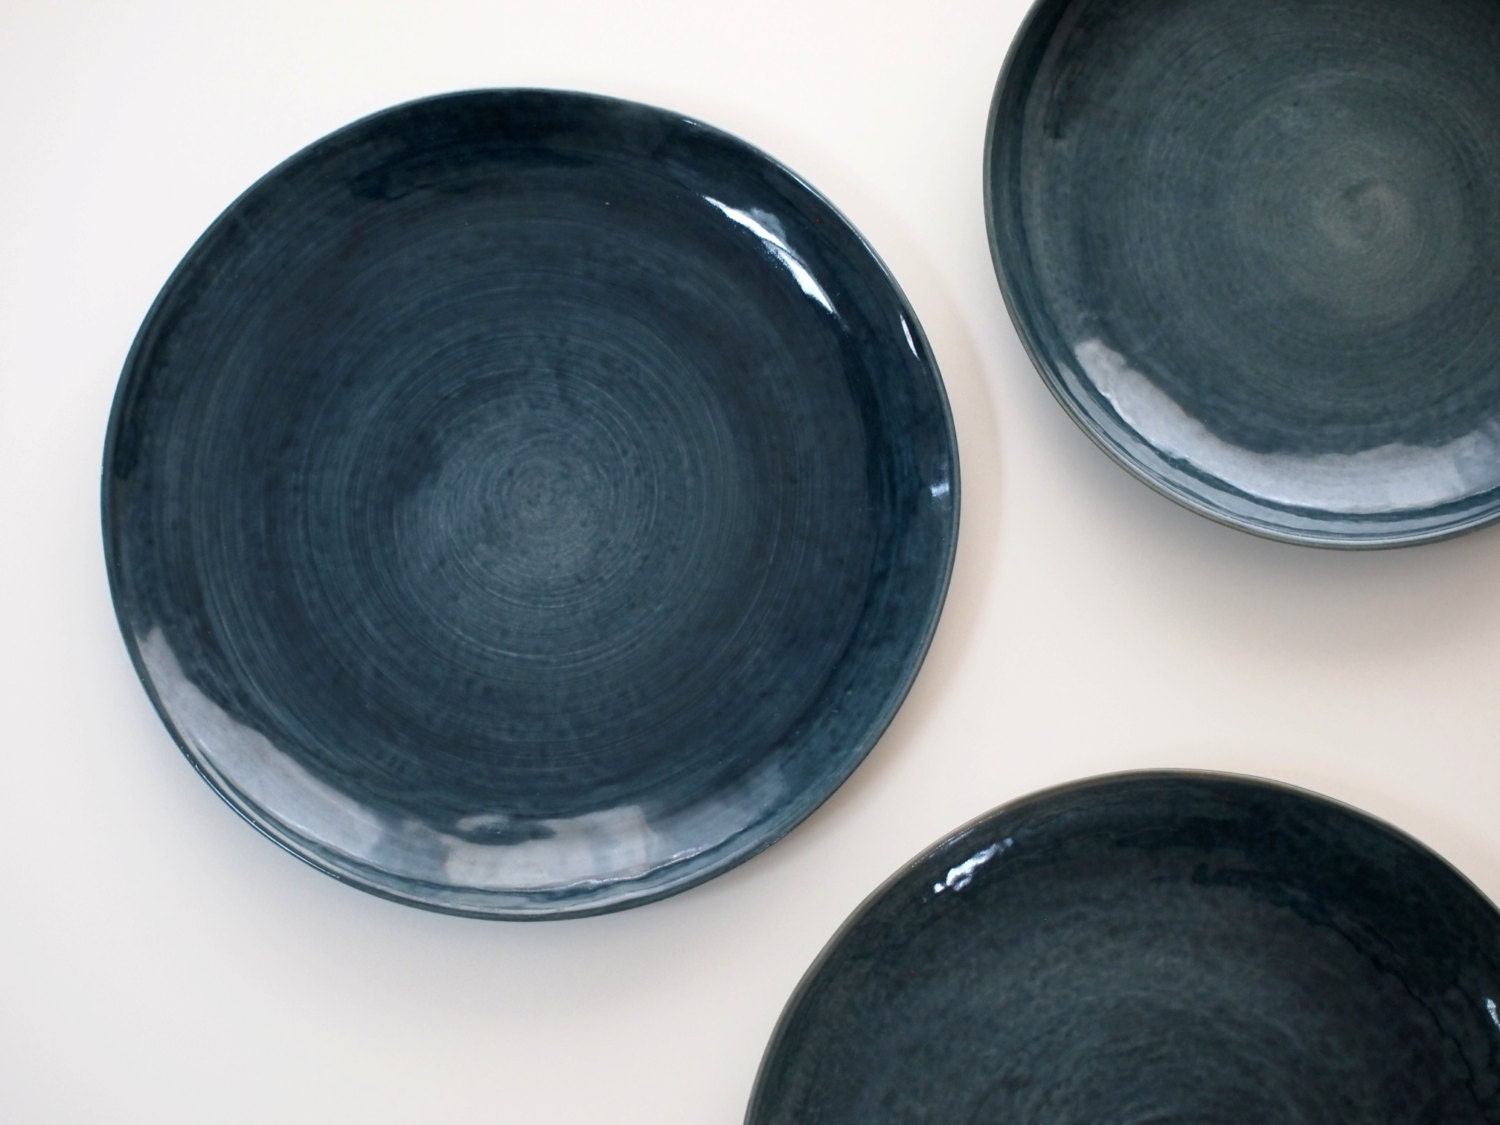 stoneware plates dinner set glazed in dark blue ceramic